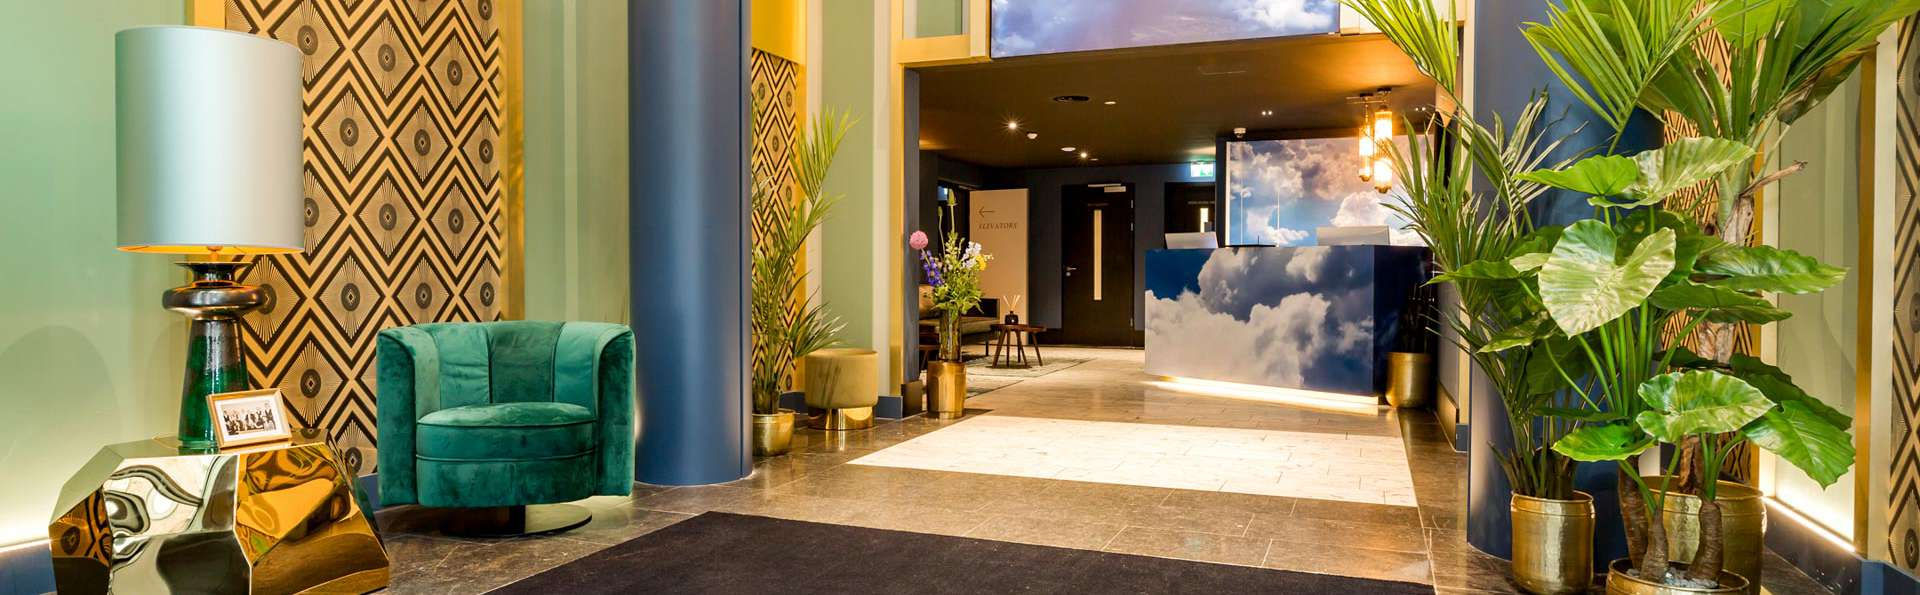 The James Hotel Rotterdam  - EDIT_LOBBY_01.jpg